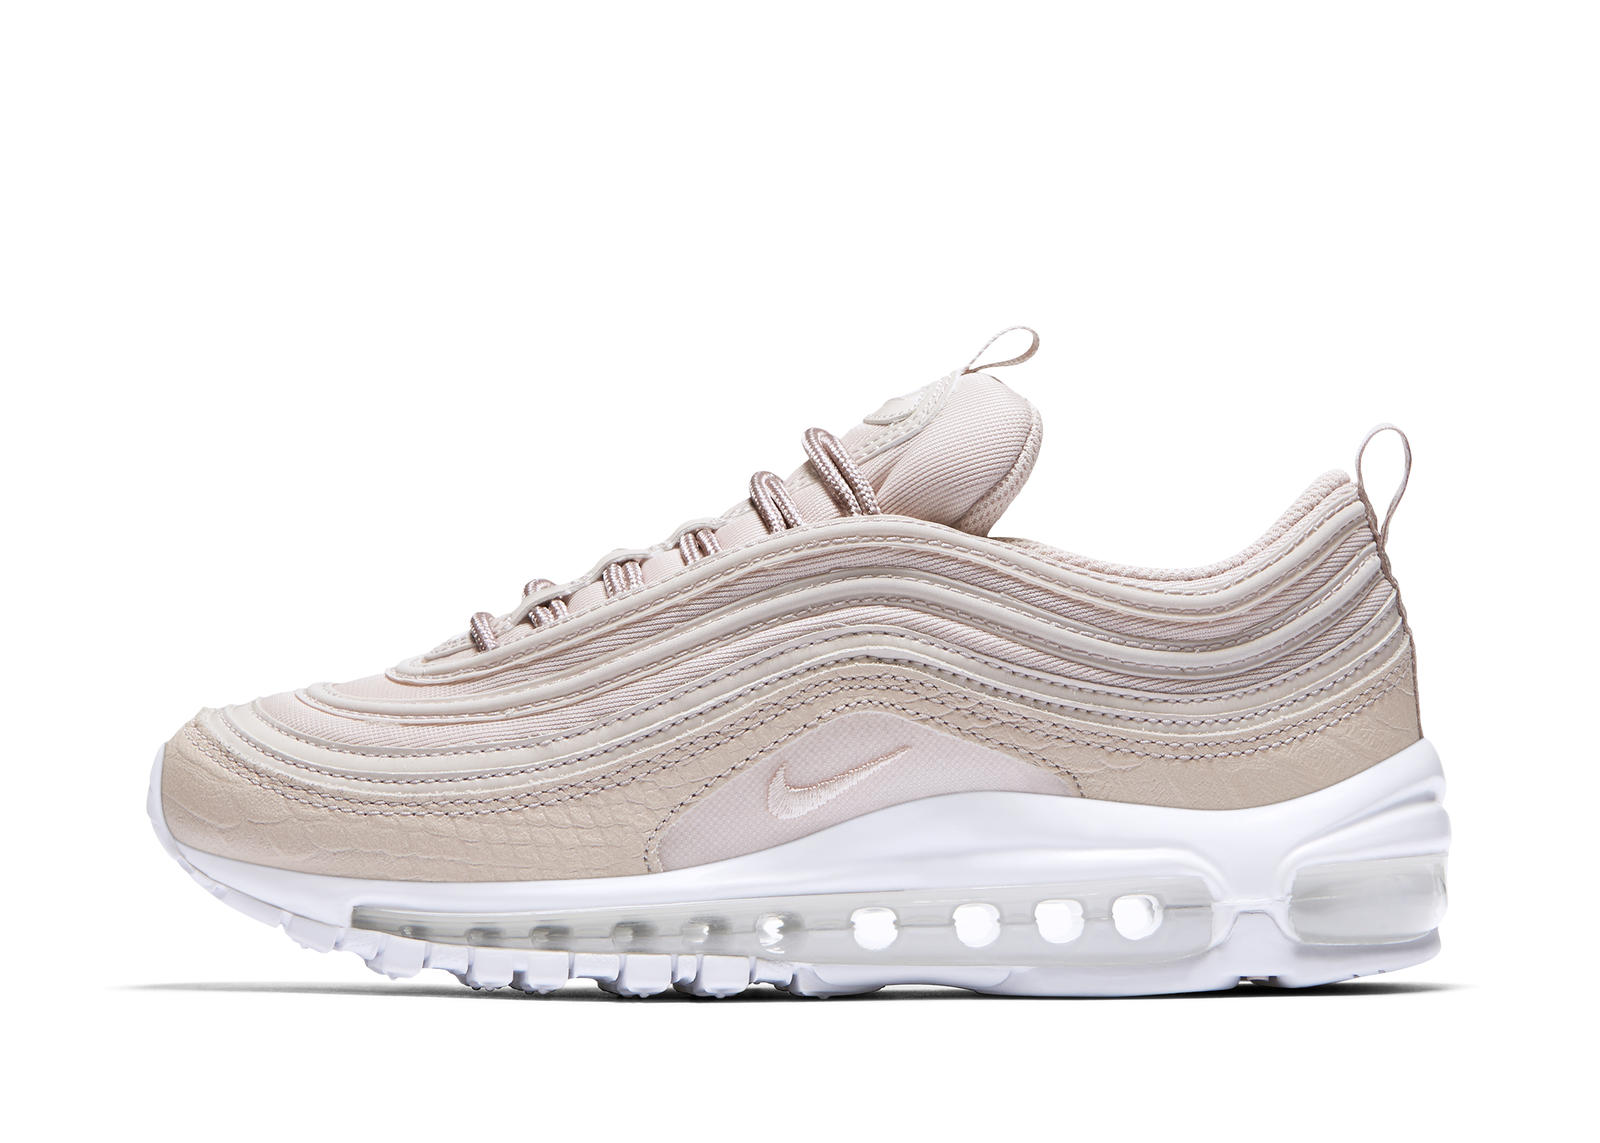 Cheap Nike air max 97 Off white (#1167709) from Roger